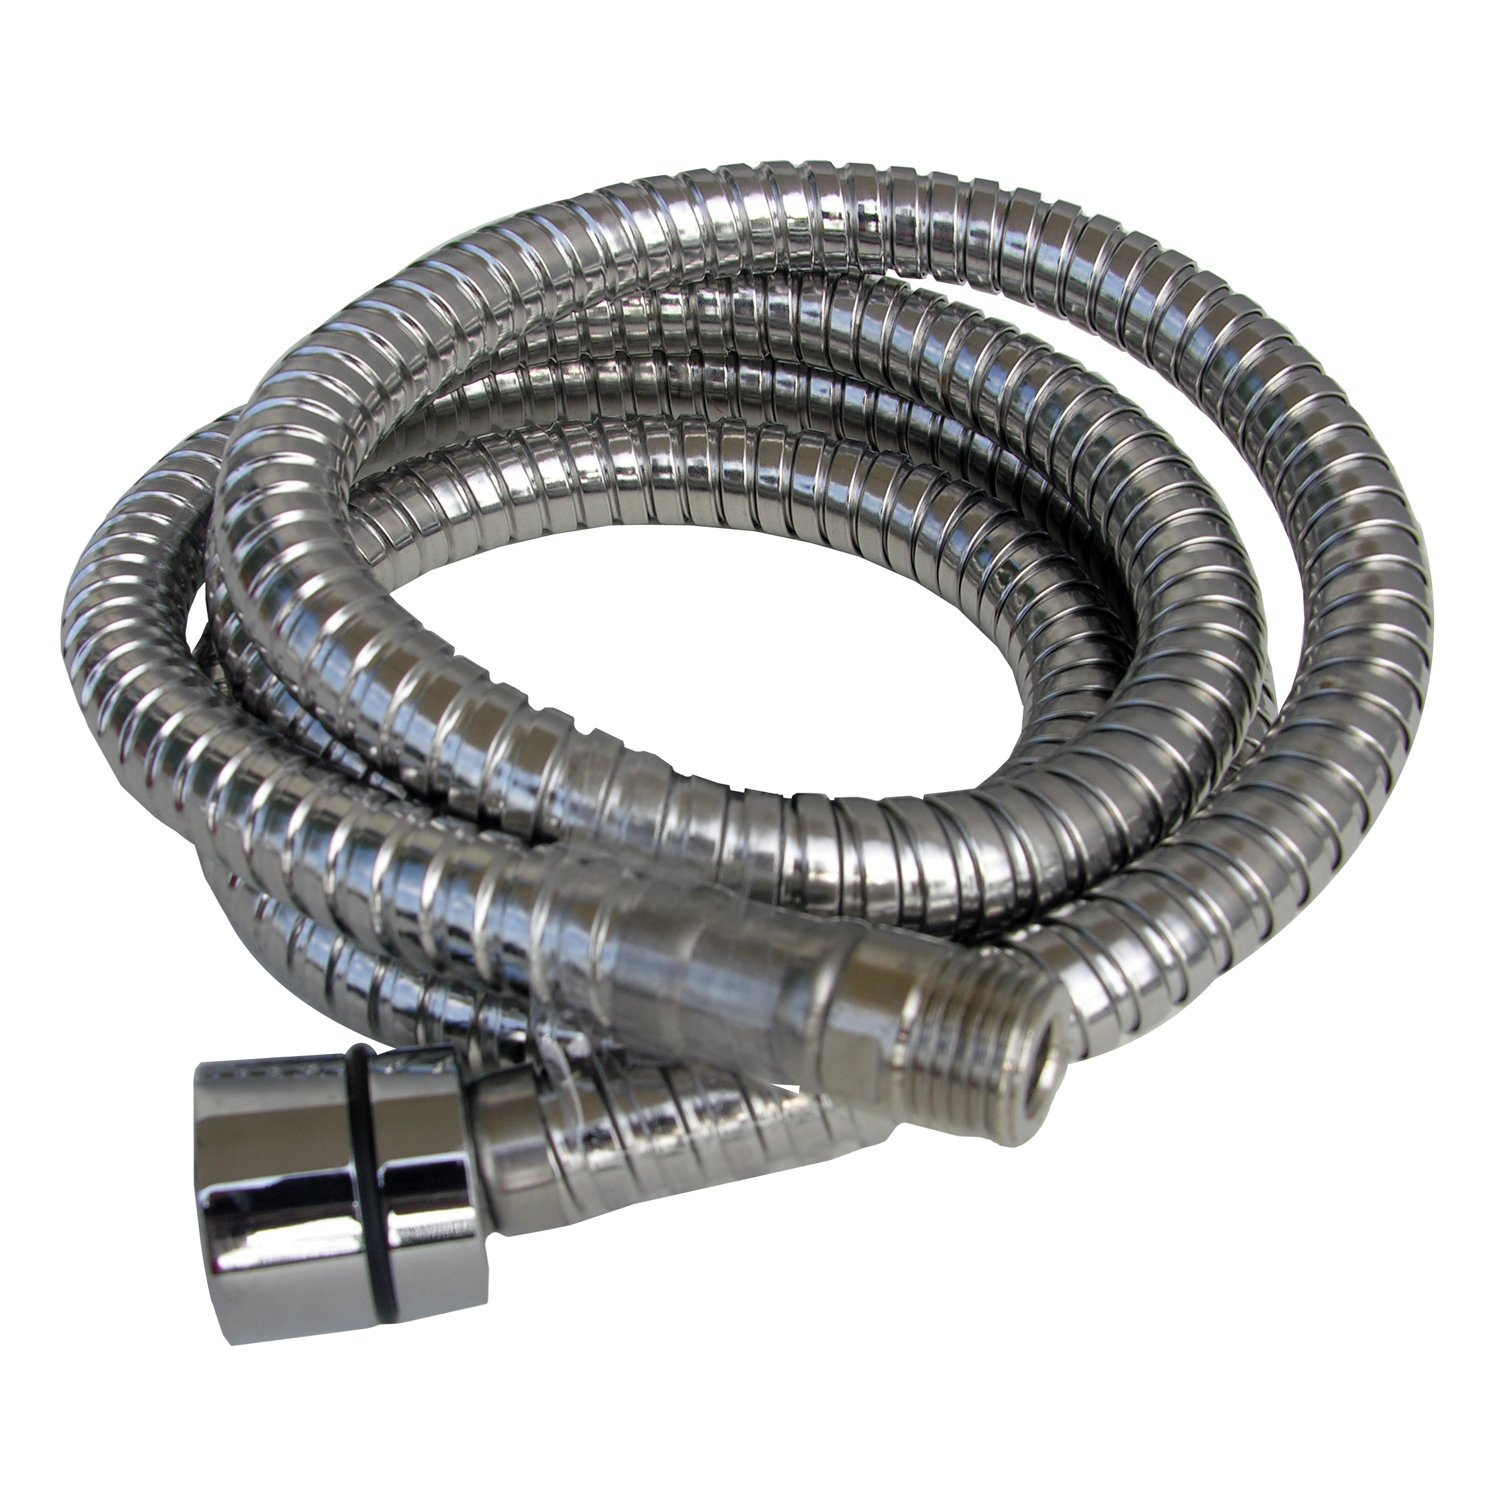 LASCO 09-6031 Kitchen Pull-Out Spray Hose Replacement, Fits Price Pfister Series 533 and 538